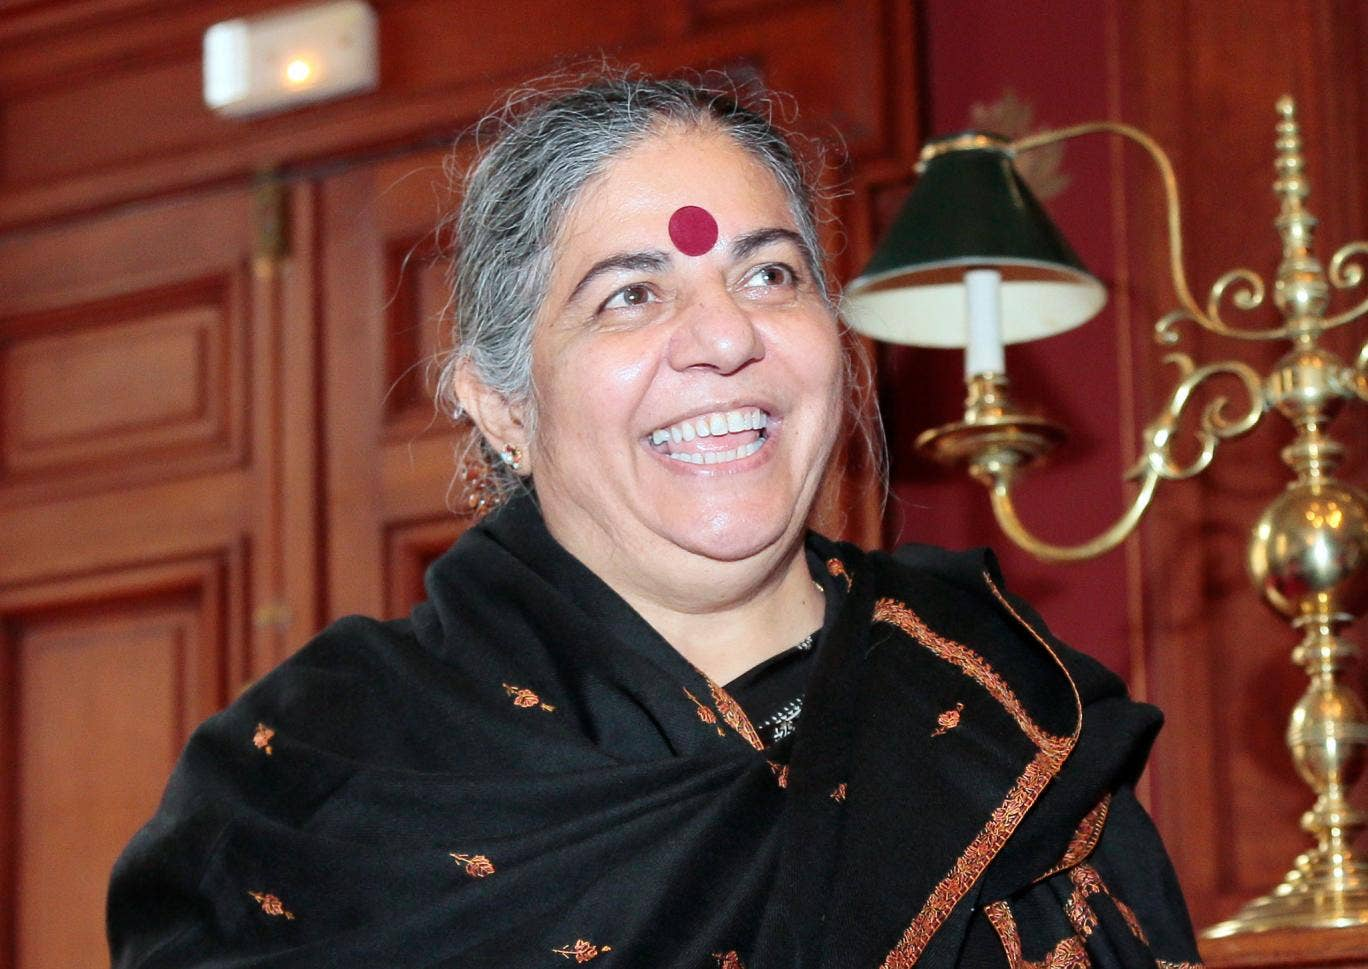 India's philosopher, environmental activist, author and eco feminist Vandana Shiva arrives to give a press conference focused on genetically modified seeds on October 10, 2012